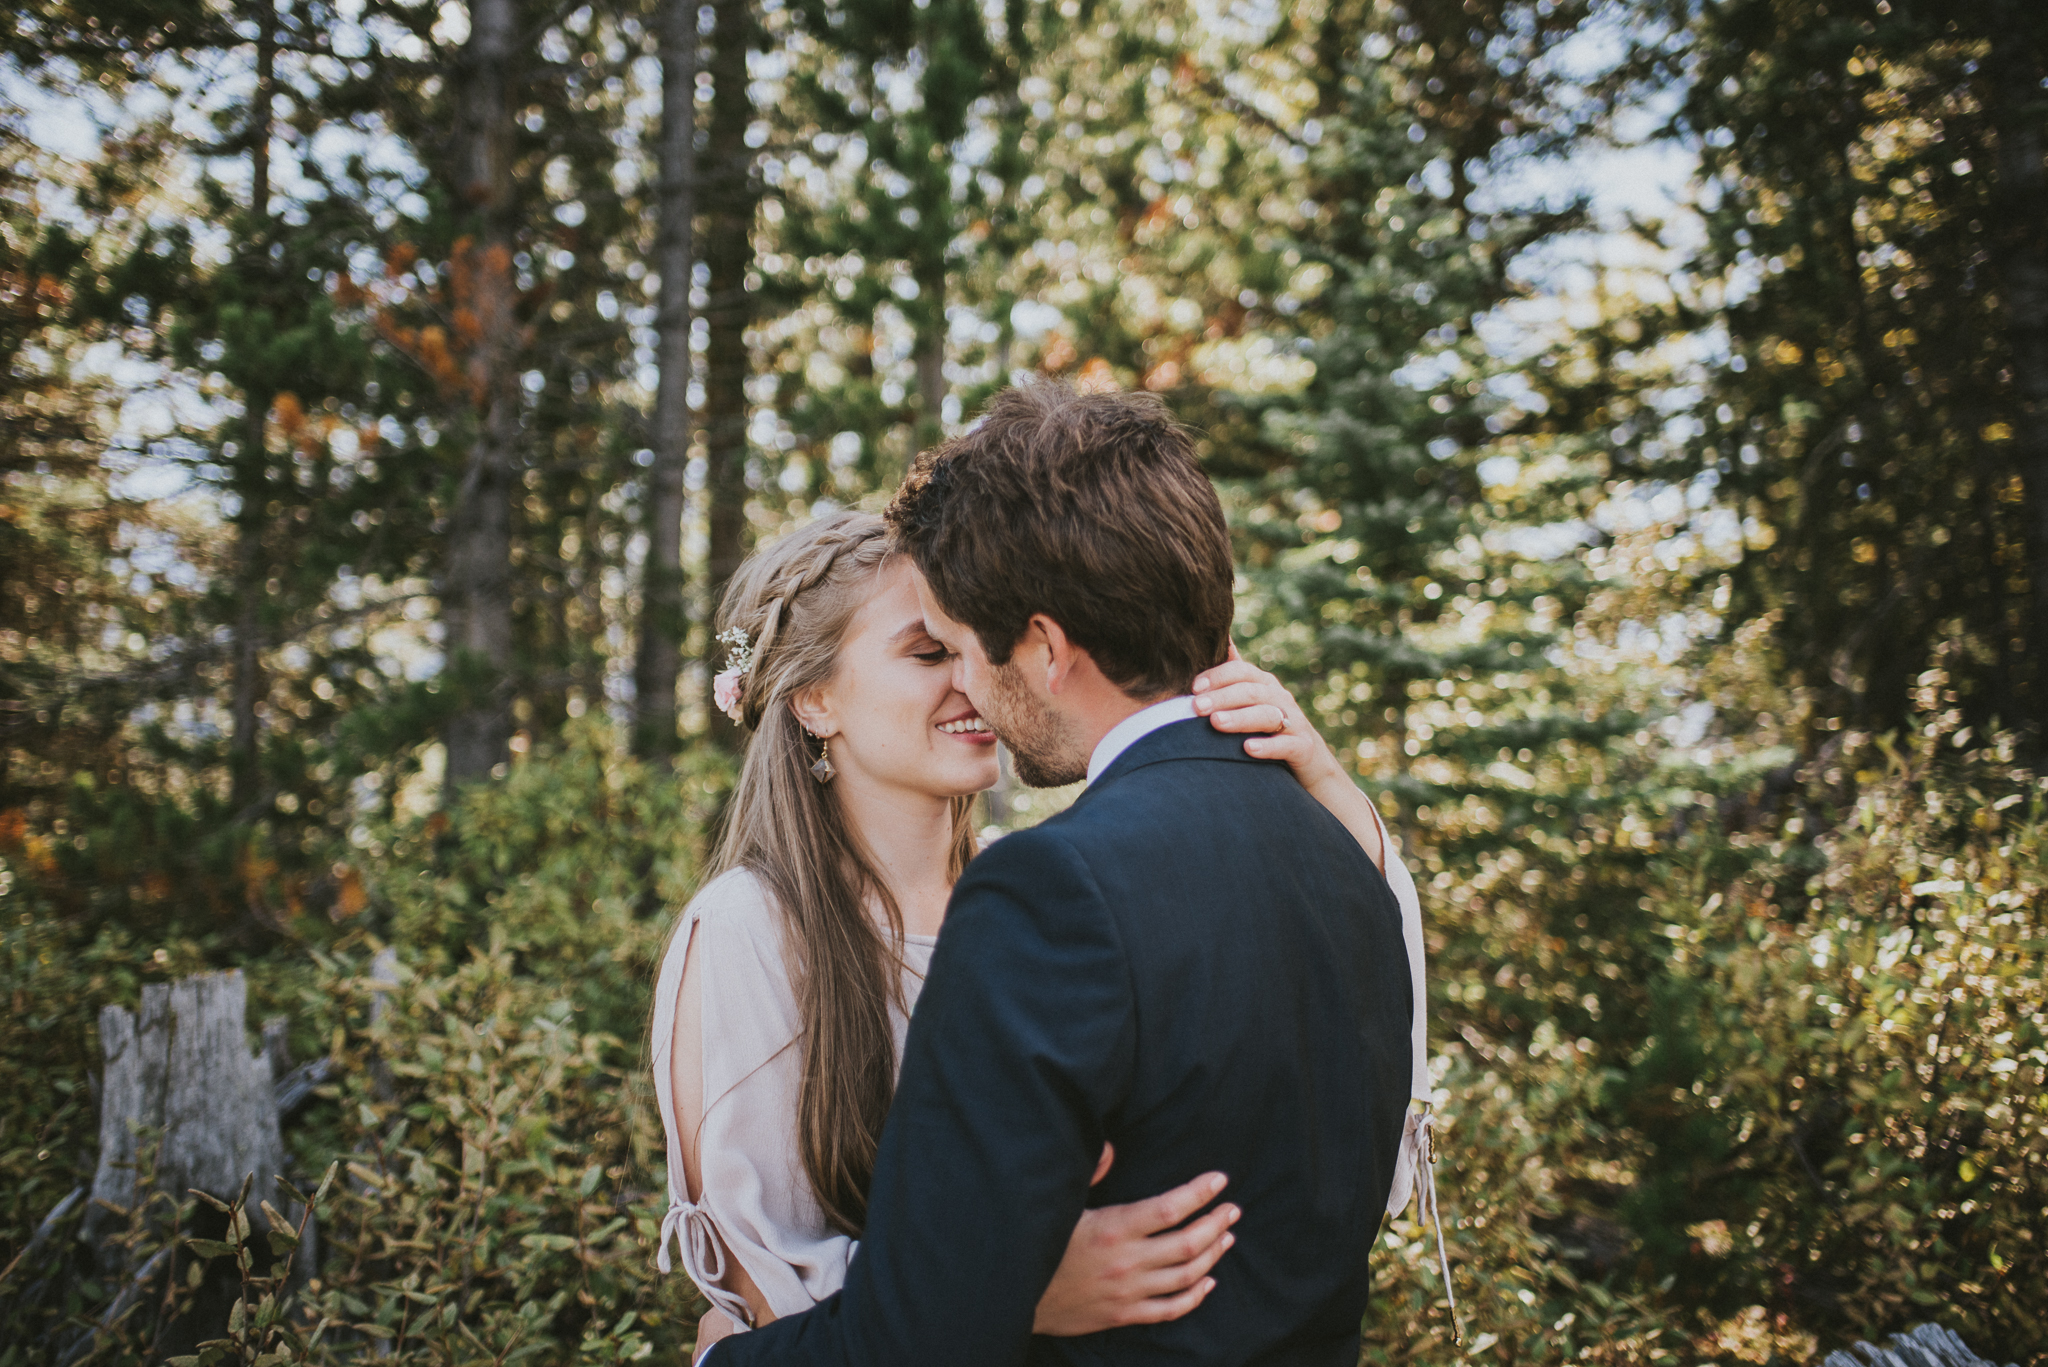 forest kananaskis bride groom elopement